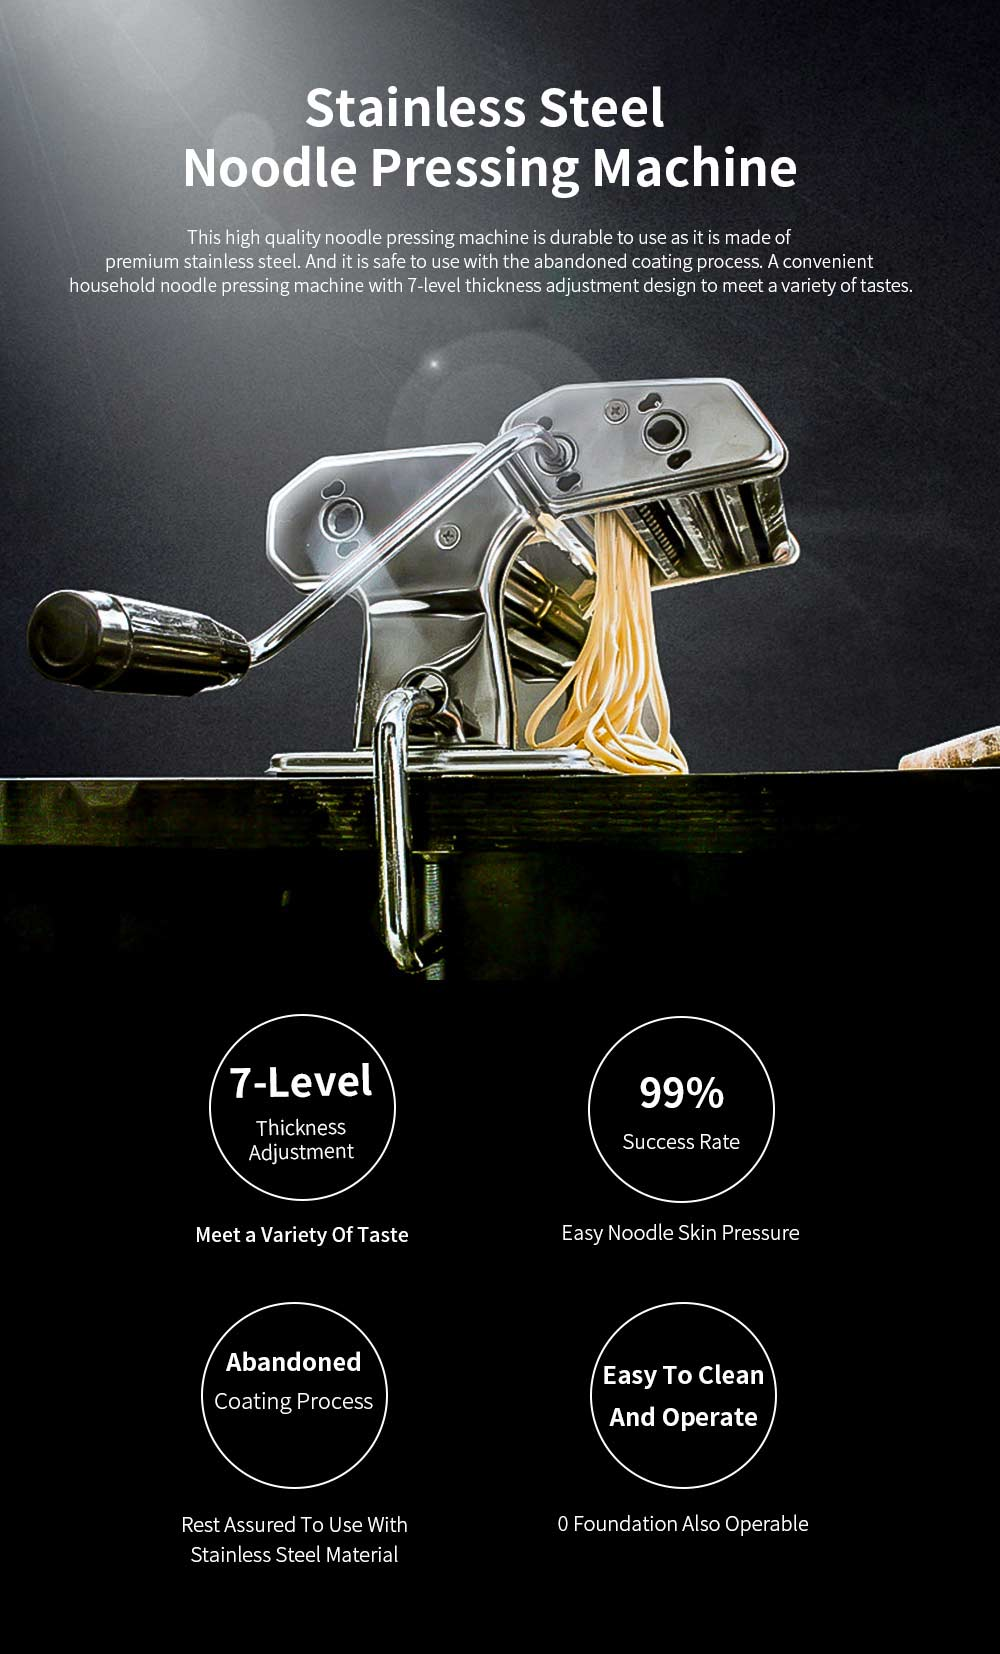 Household Noodle Pressing Machine Stainless Steel Noodle Cutting Machine with 7-Level Thickness Adjustment 0